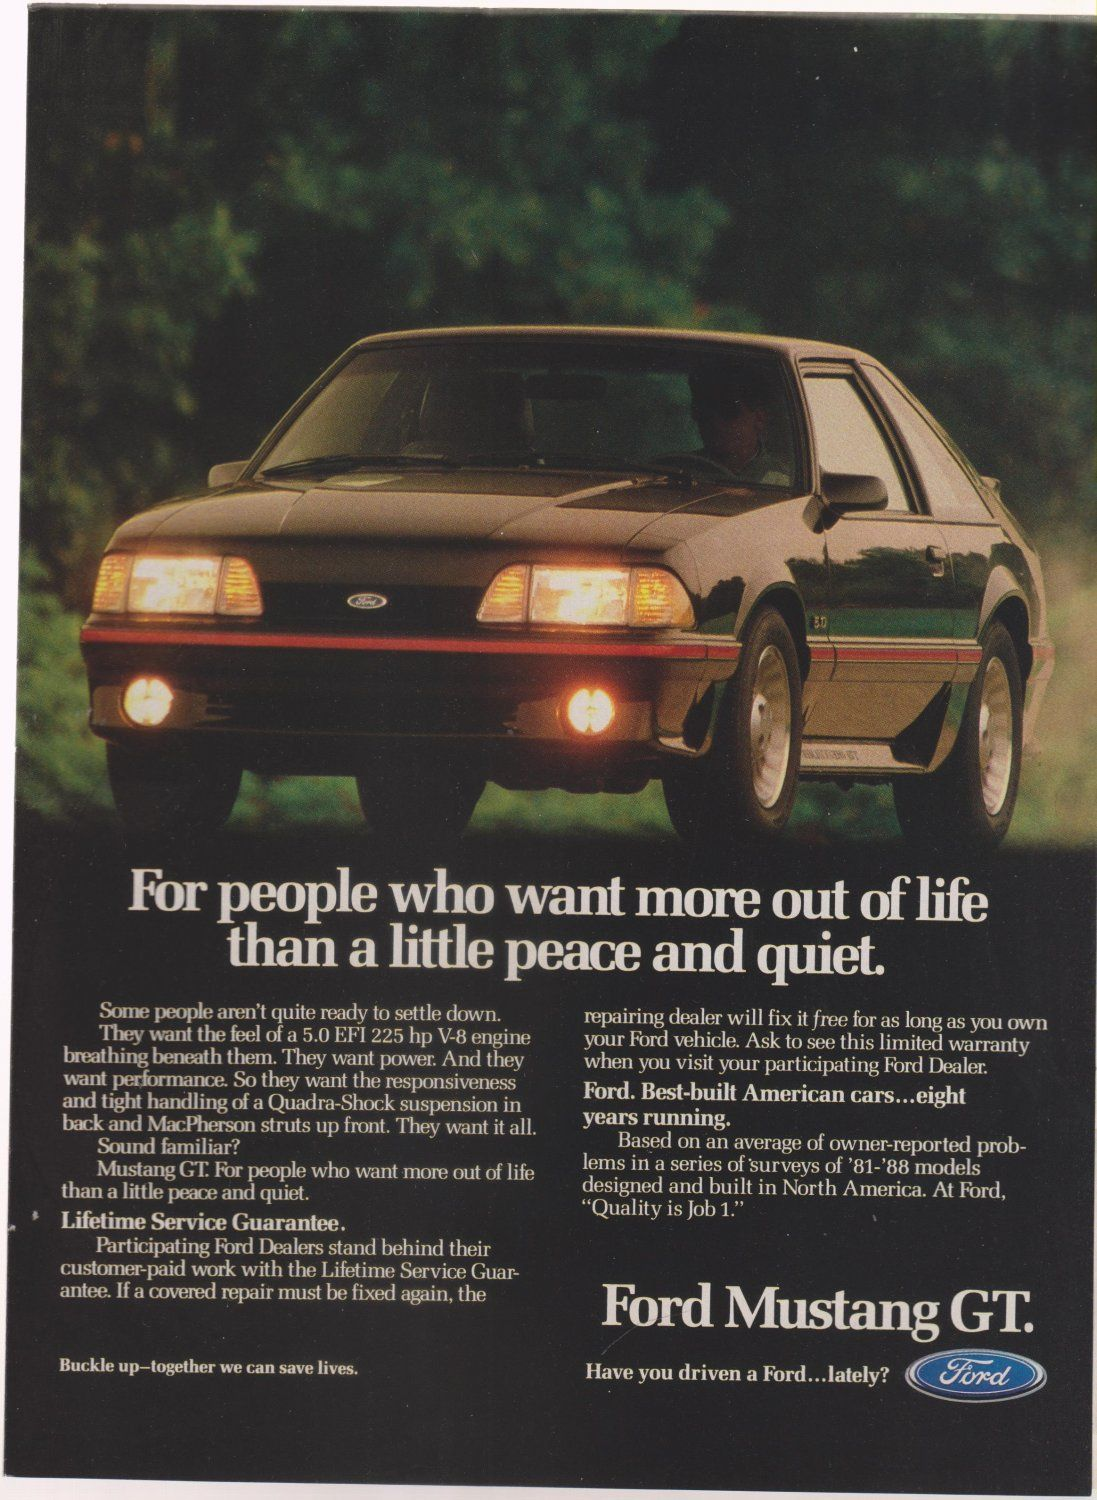 Vintage Ford Mustang Gt Magazine Advertisement Ford Mustang